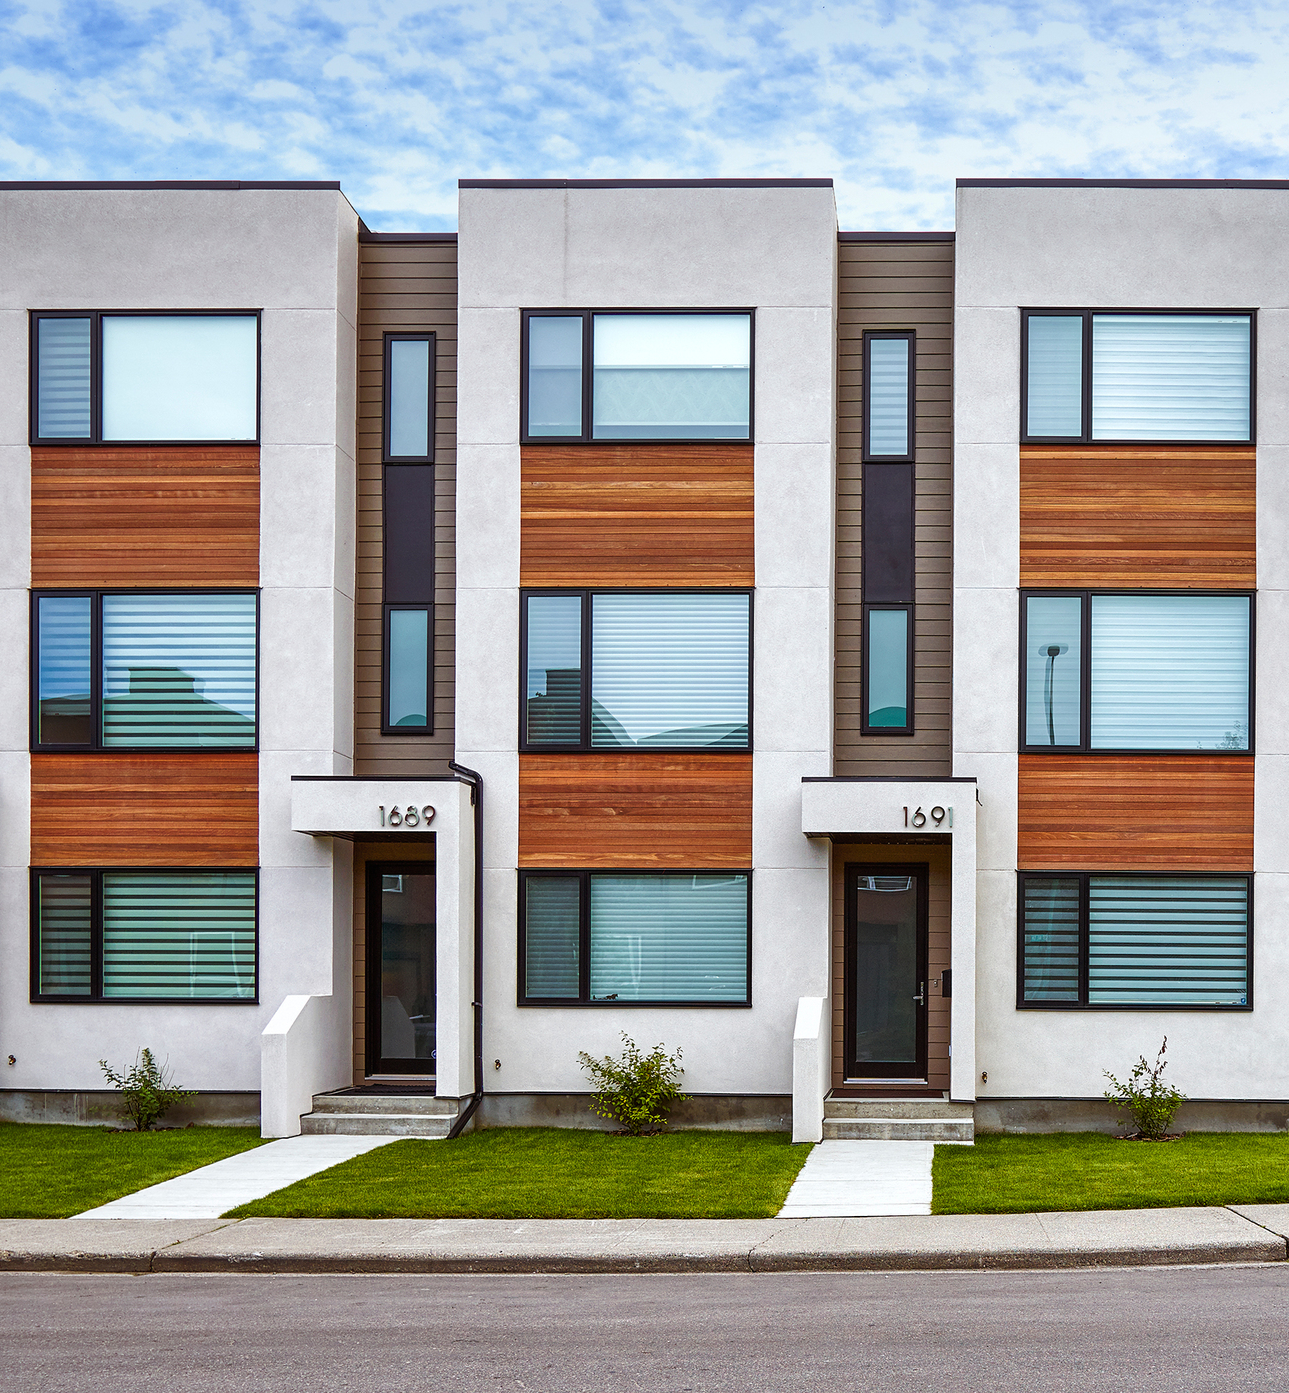 Parcside Townhouses  Photo by Gary Campbell